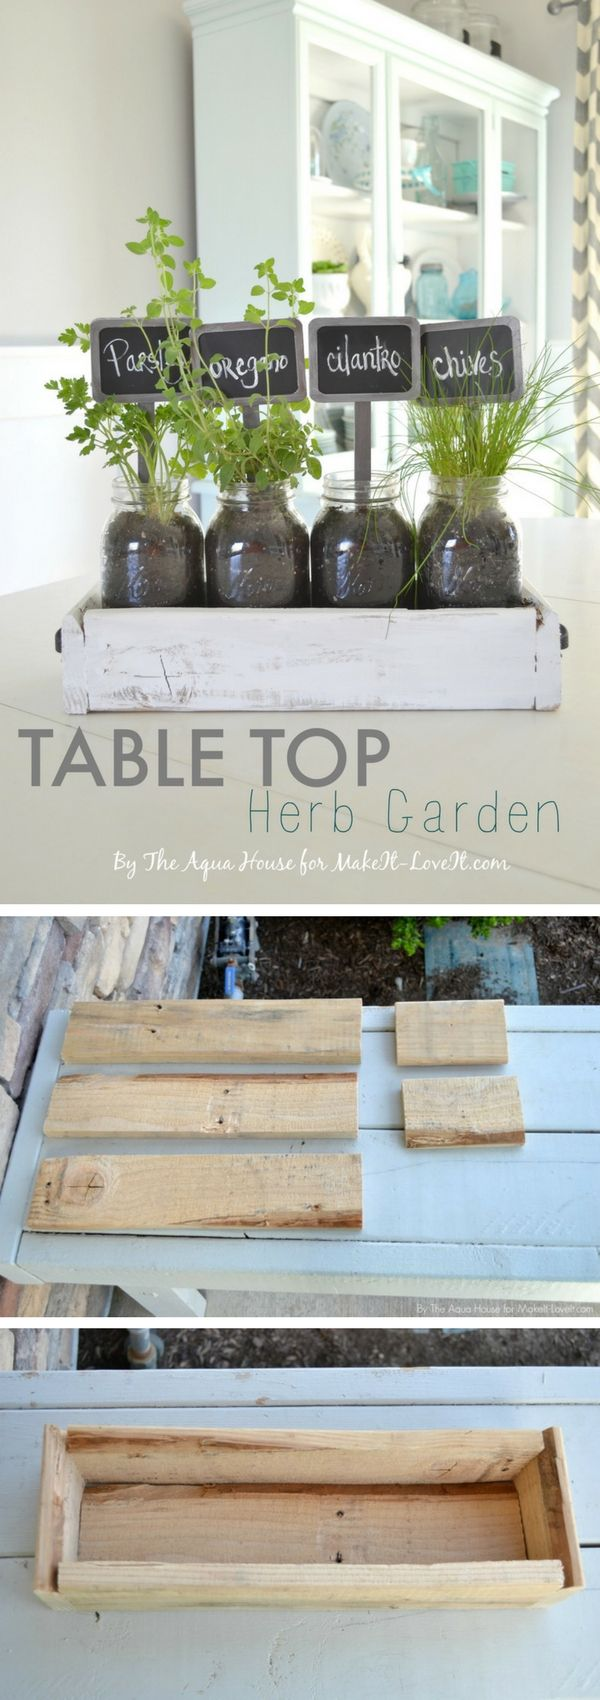 Check out how to build a DIY tabletop herb garden @istandarddesign